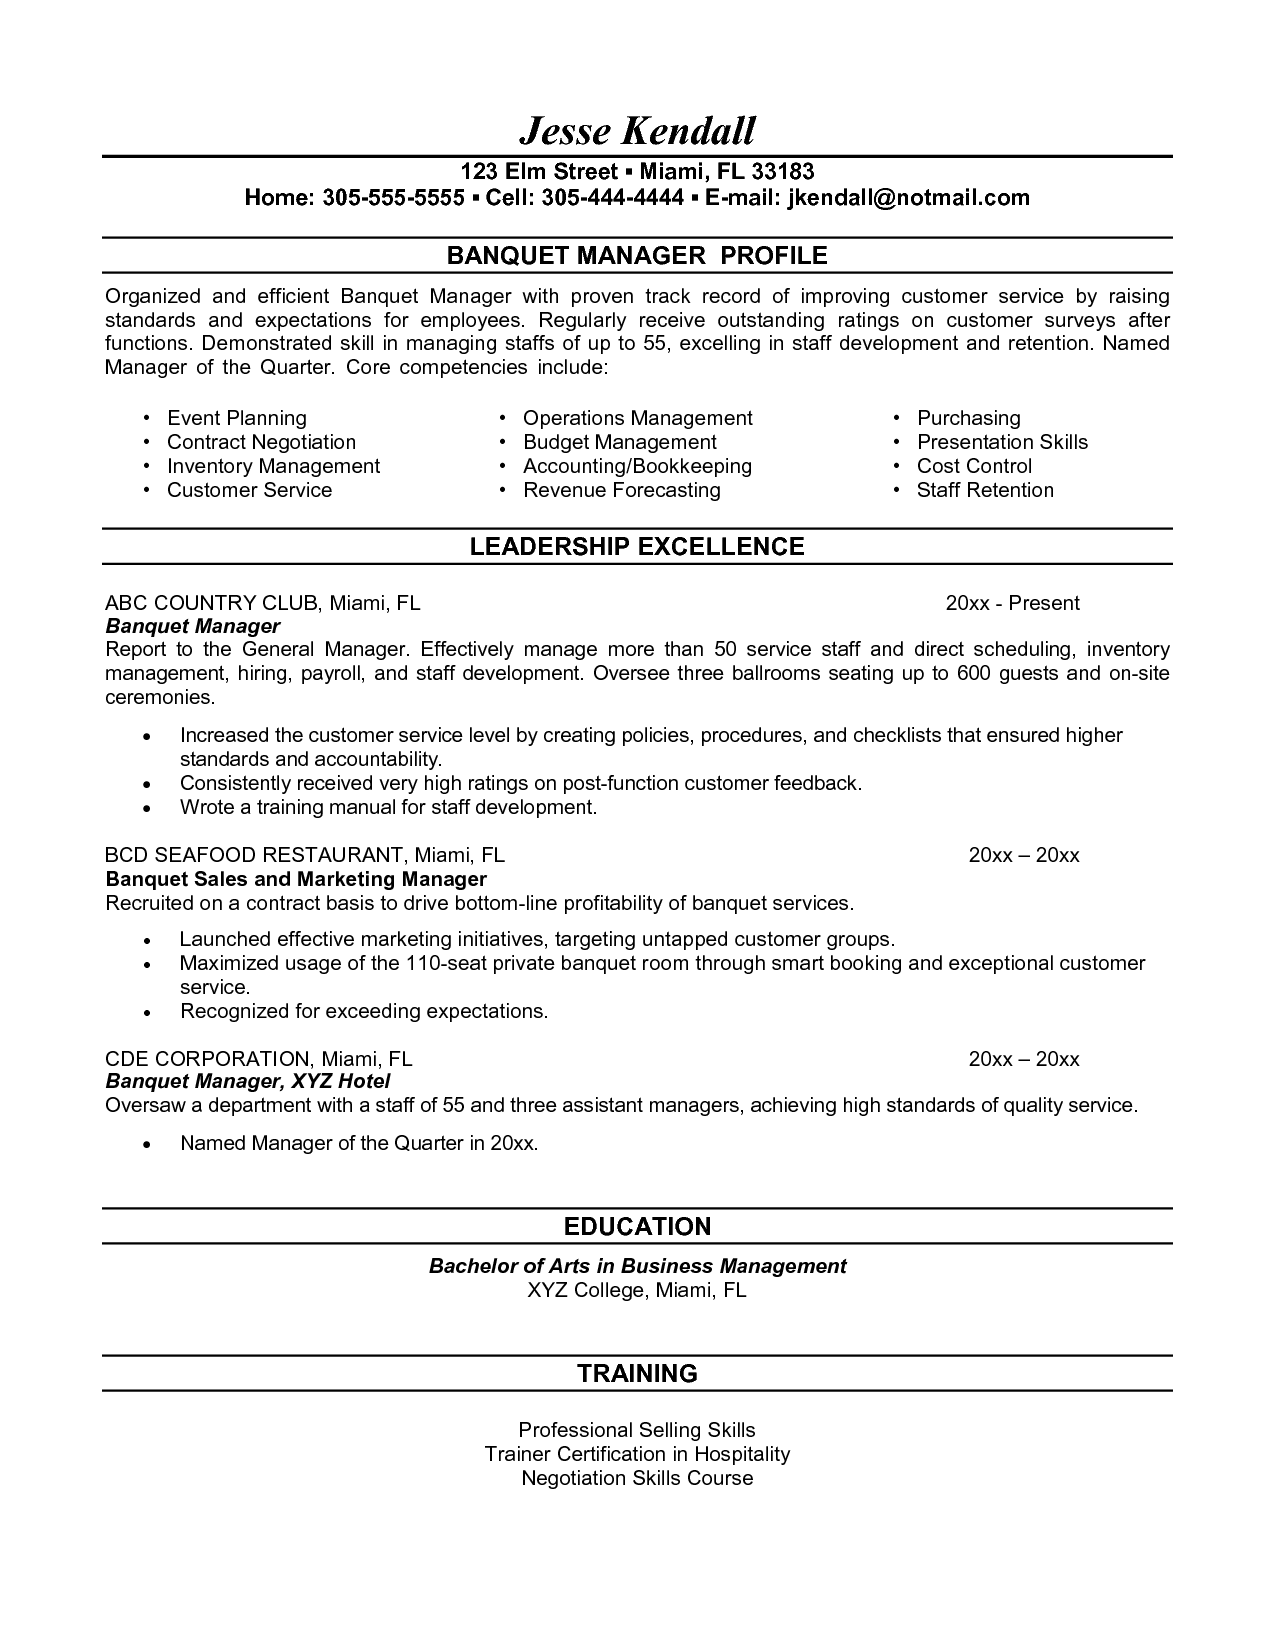 Special Education Teacher Resume  School    Special